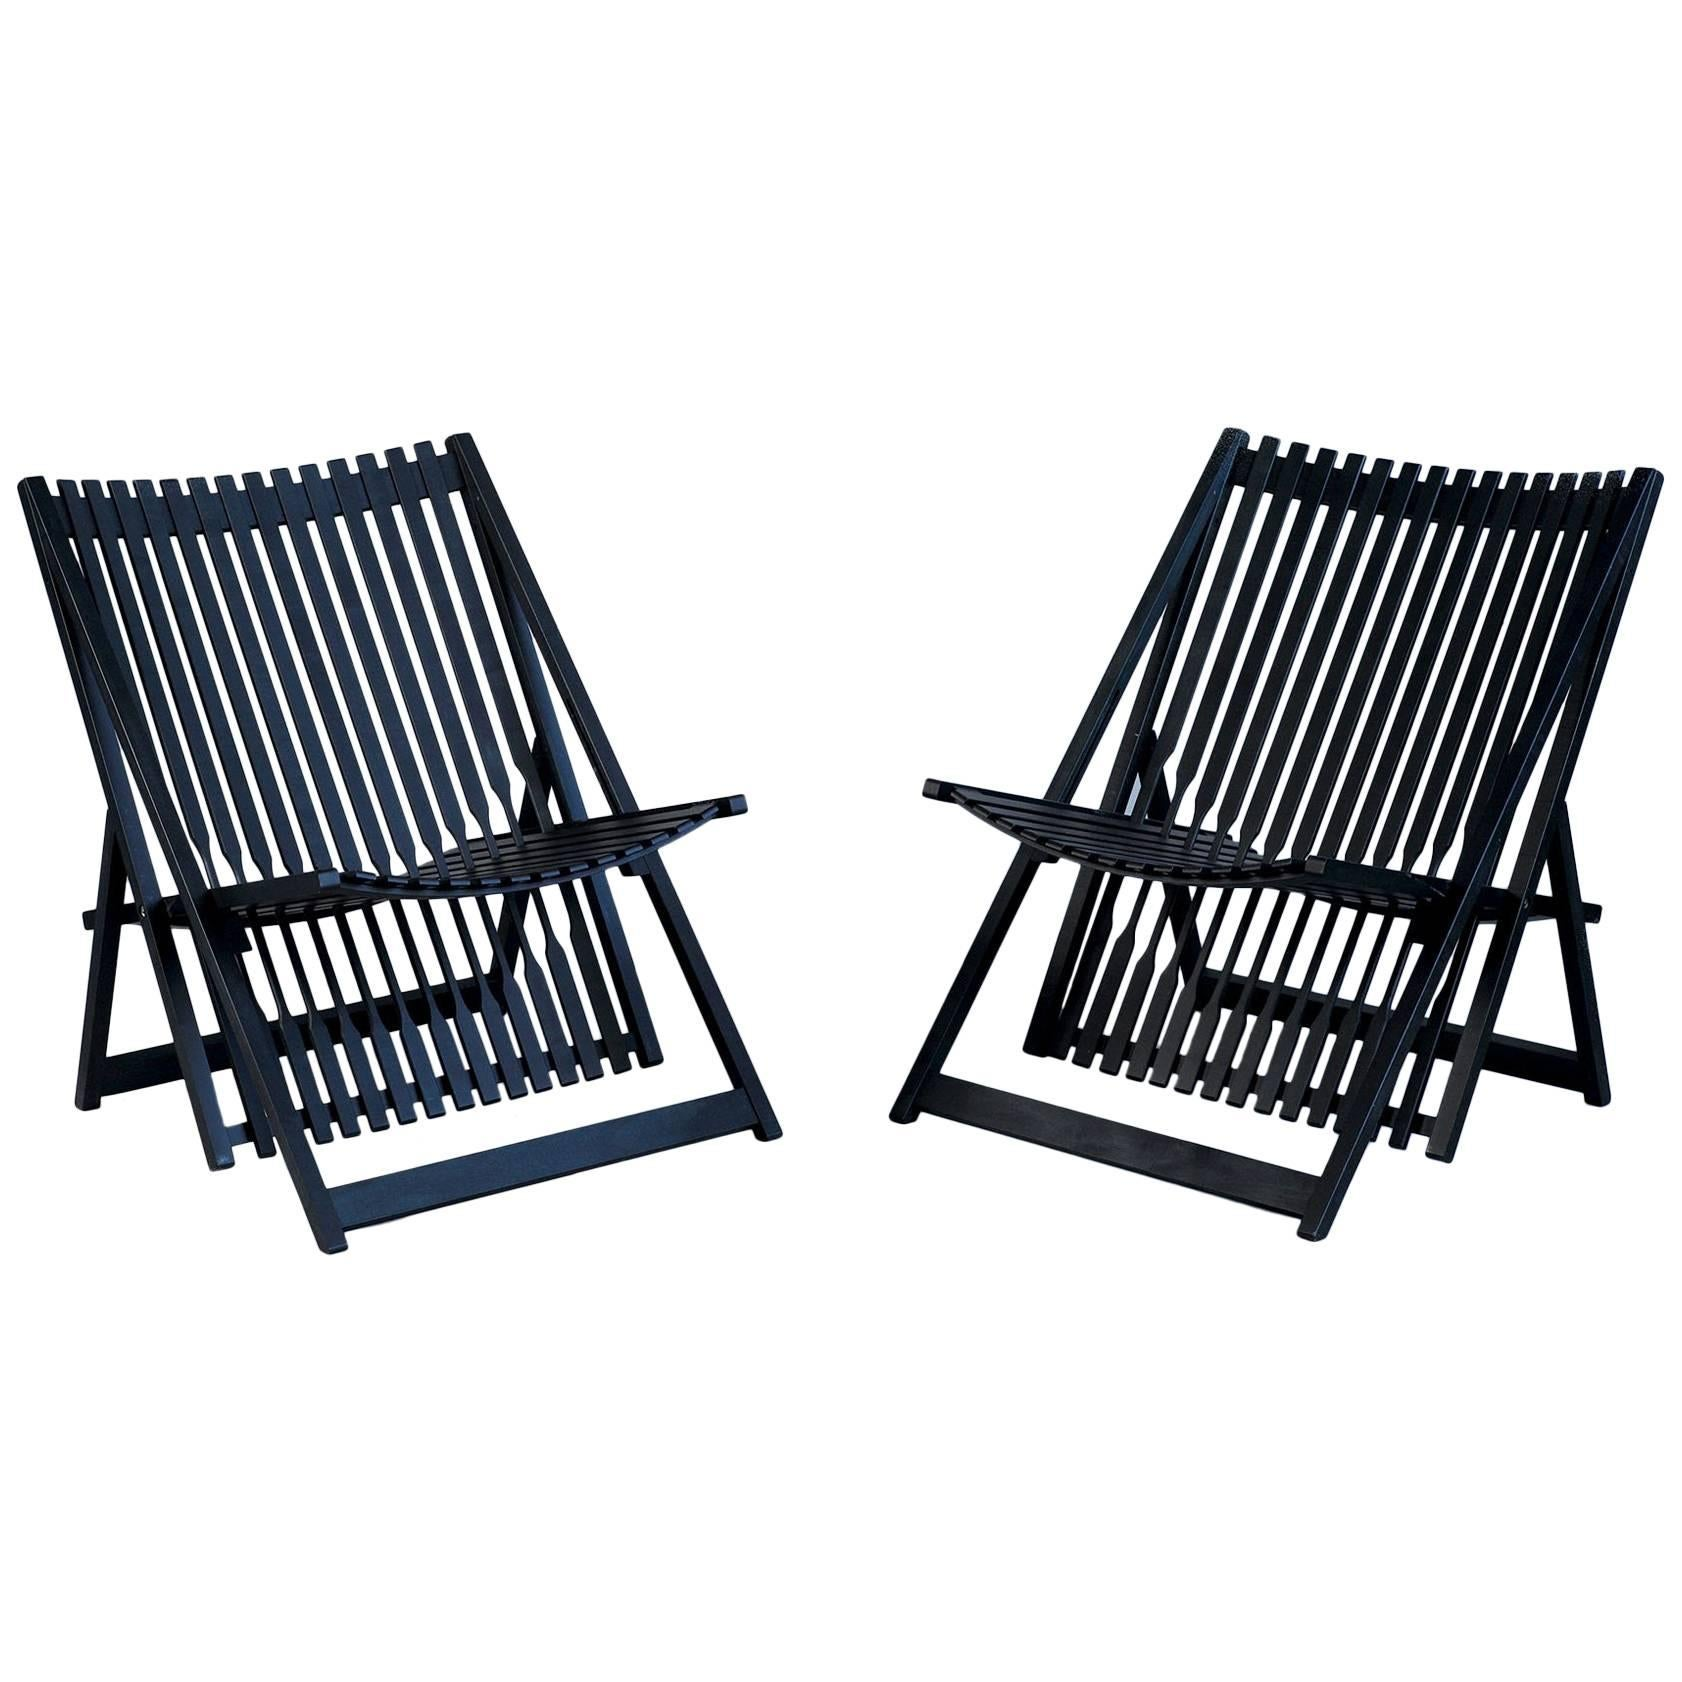 Jean-Claude Duboys, Pair of A1 Armchairs, France, 1980